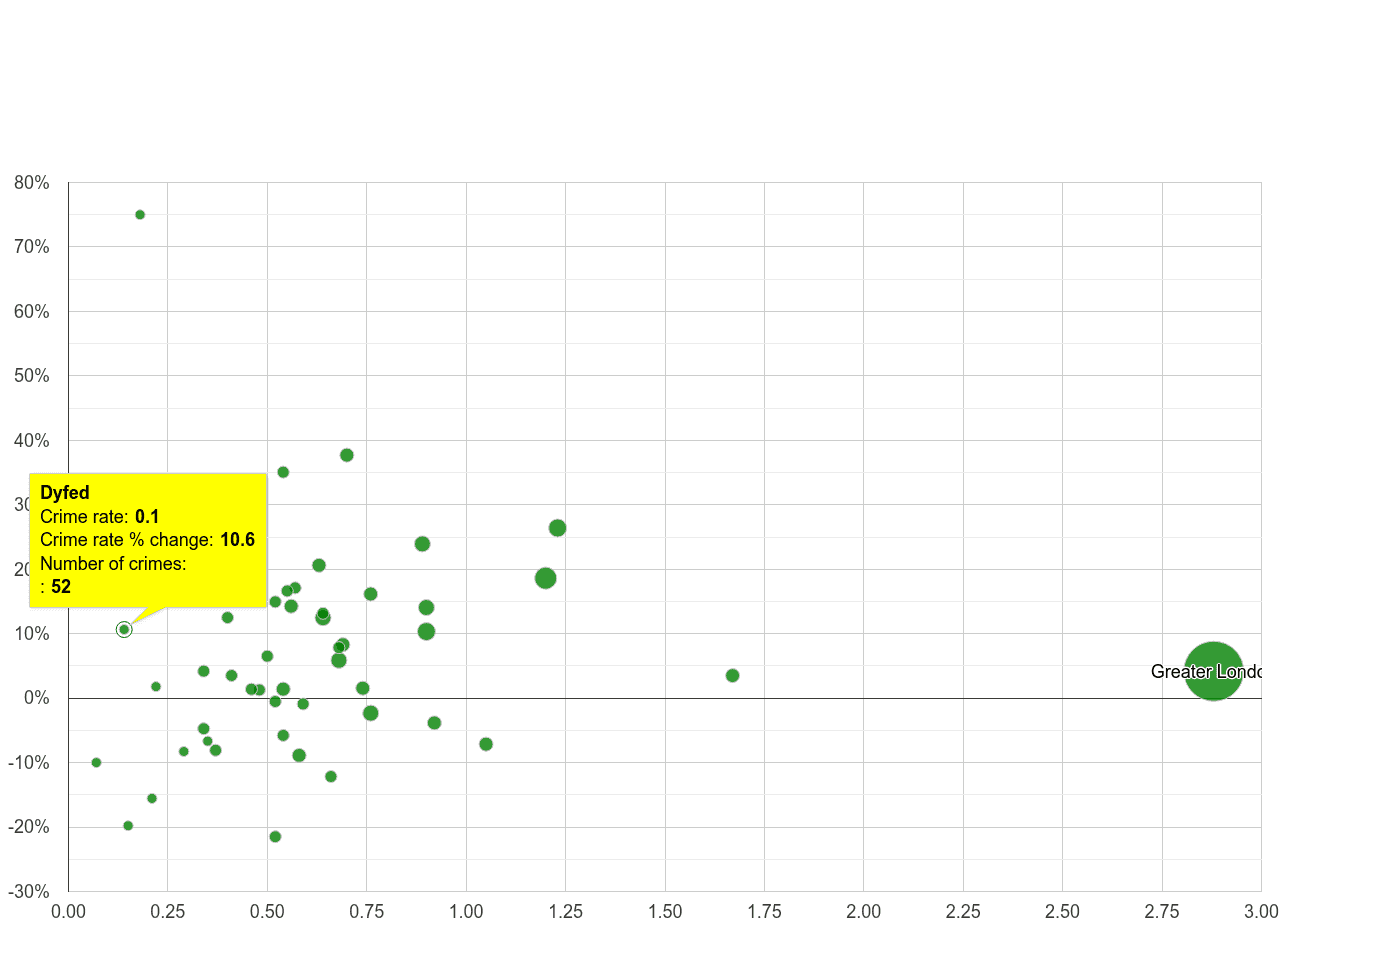 Dyfed robbery crime rate compared to other counties